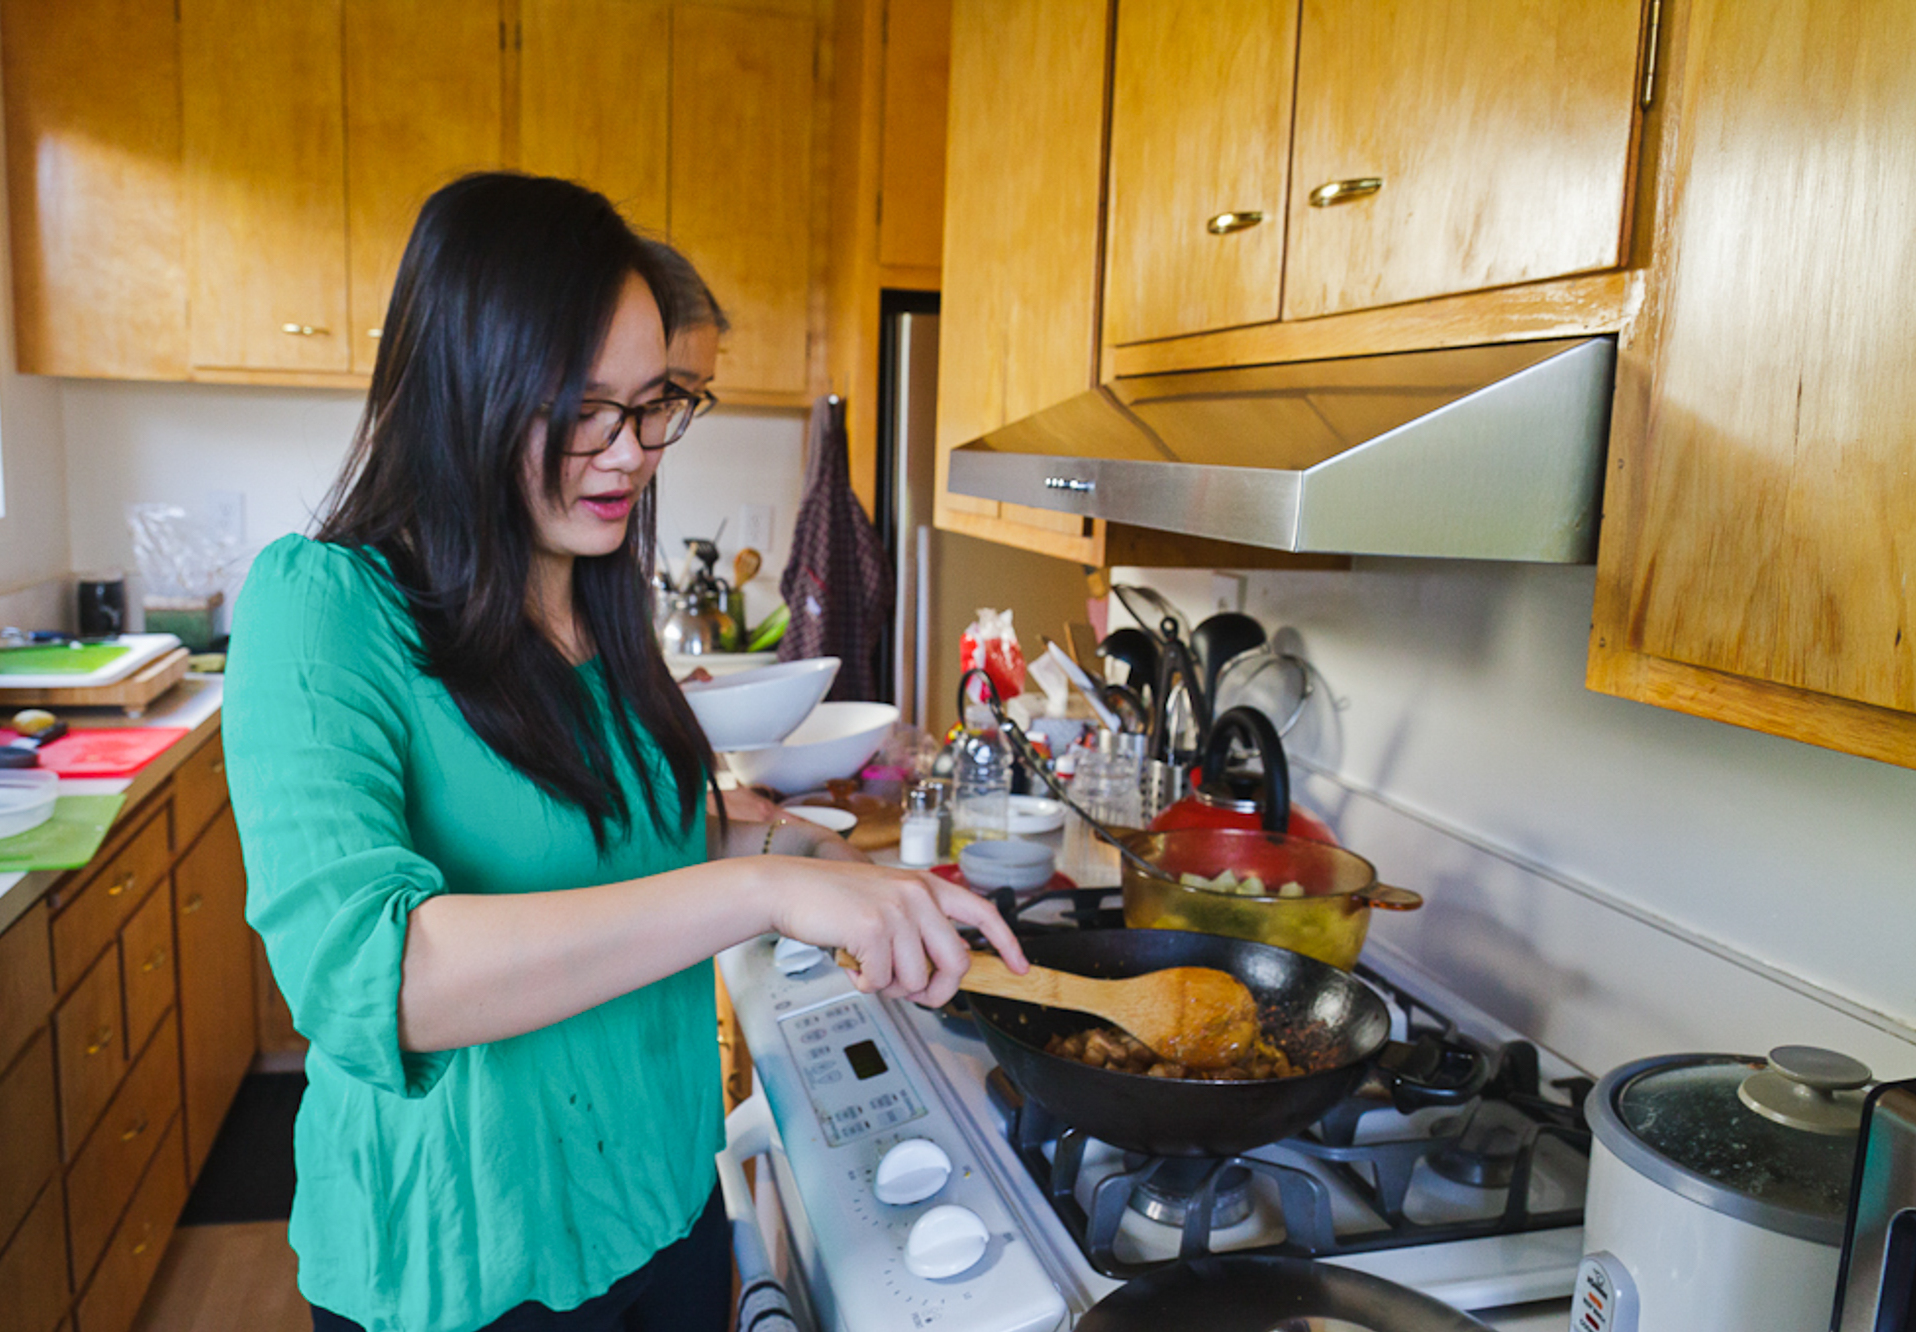 Khanh-Hoa Nguyen cooks caramelized pork belly with ginger, a Cambodian dish served to women who have just given birth. (Photo Courtesy: Grace Hwang Lynch for NPR)